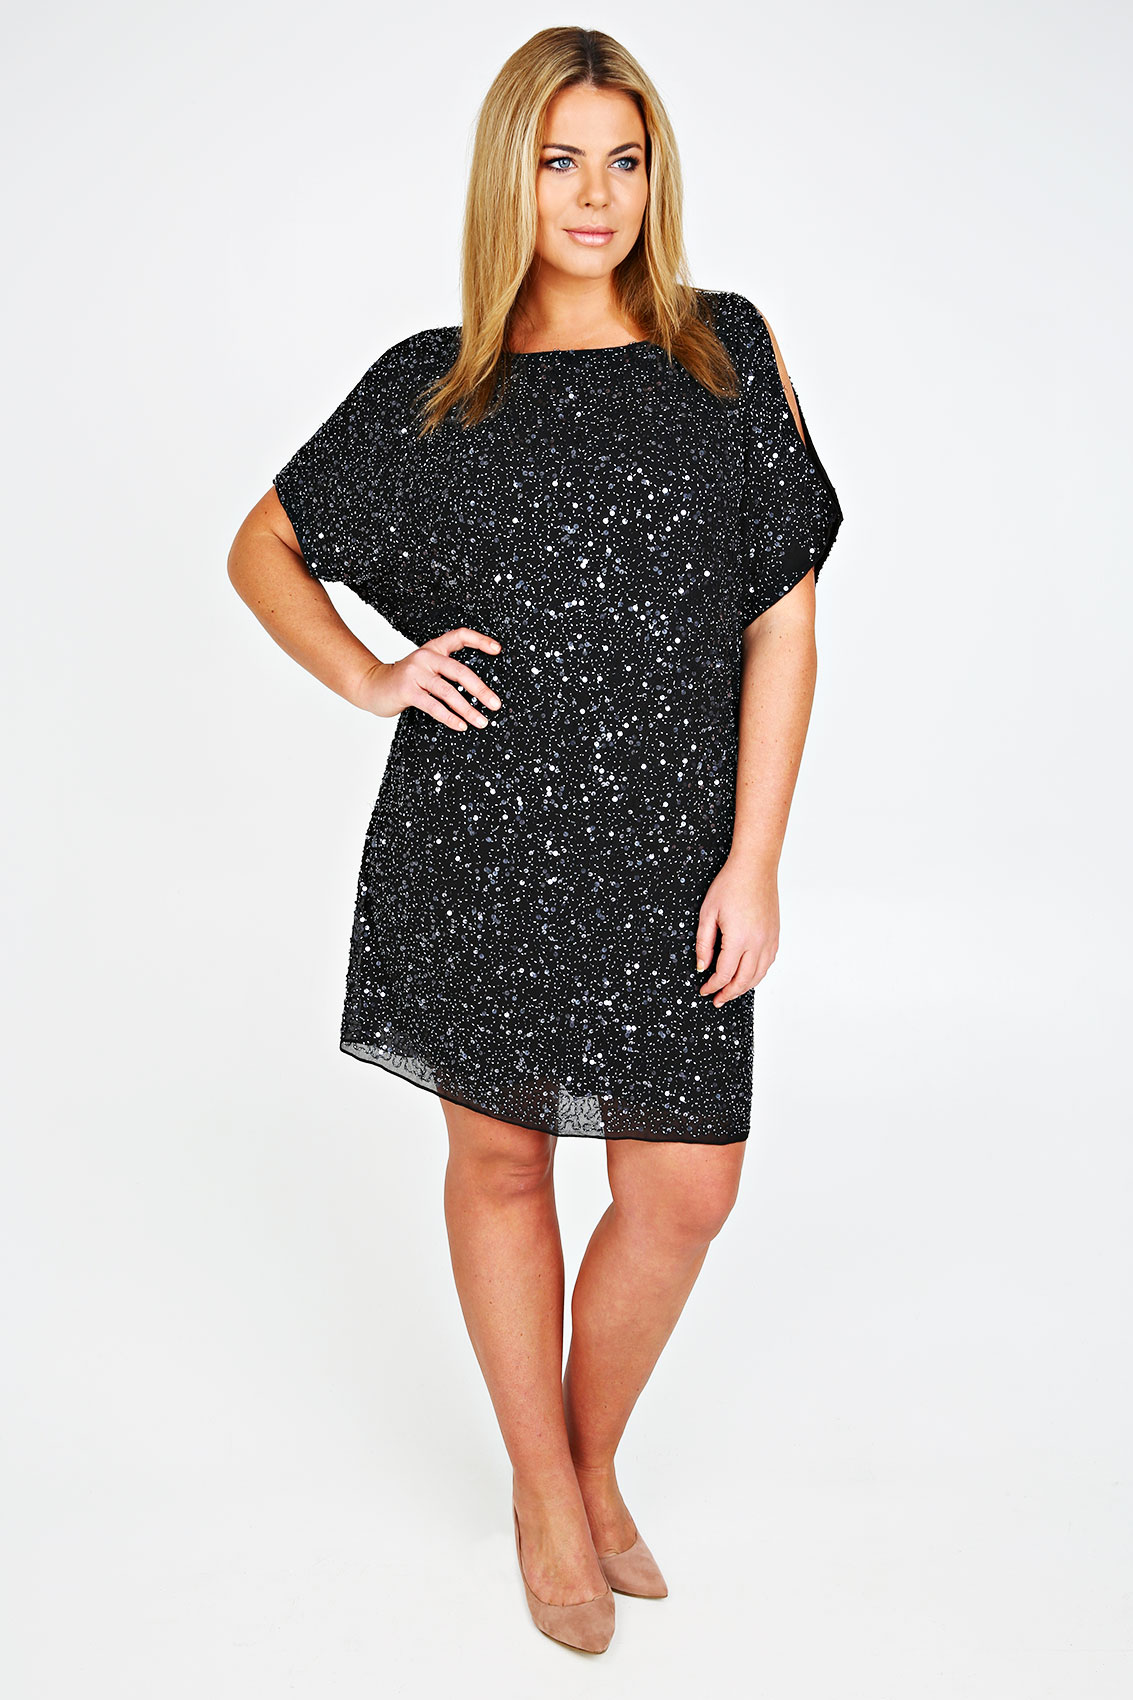 Plus size dresses in the uk